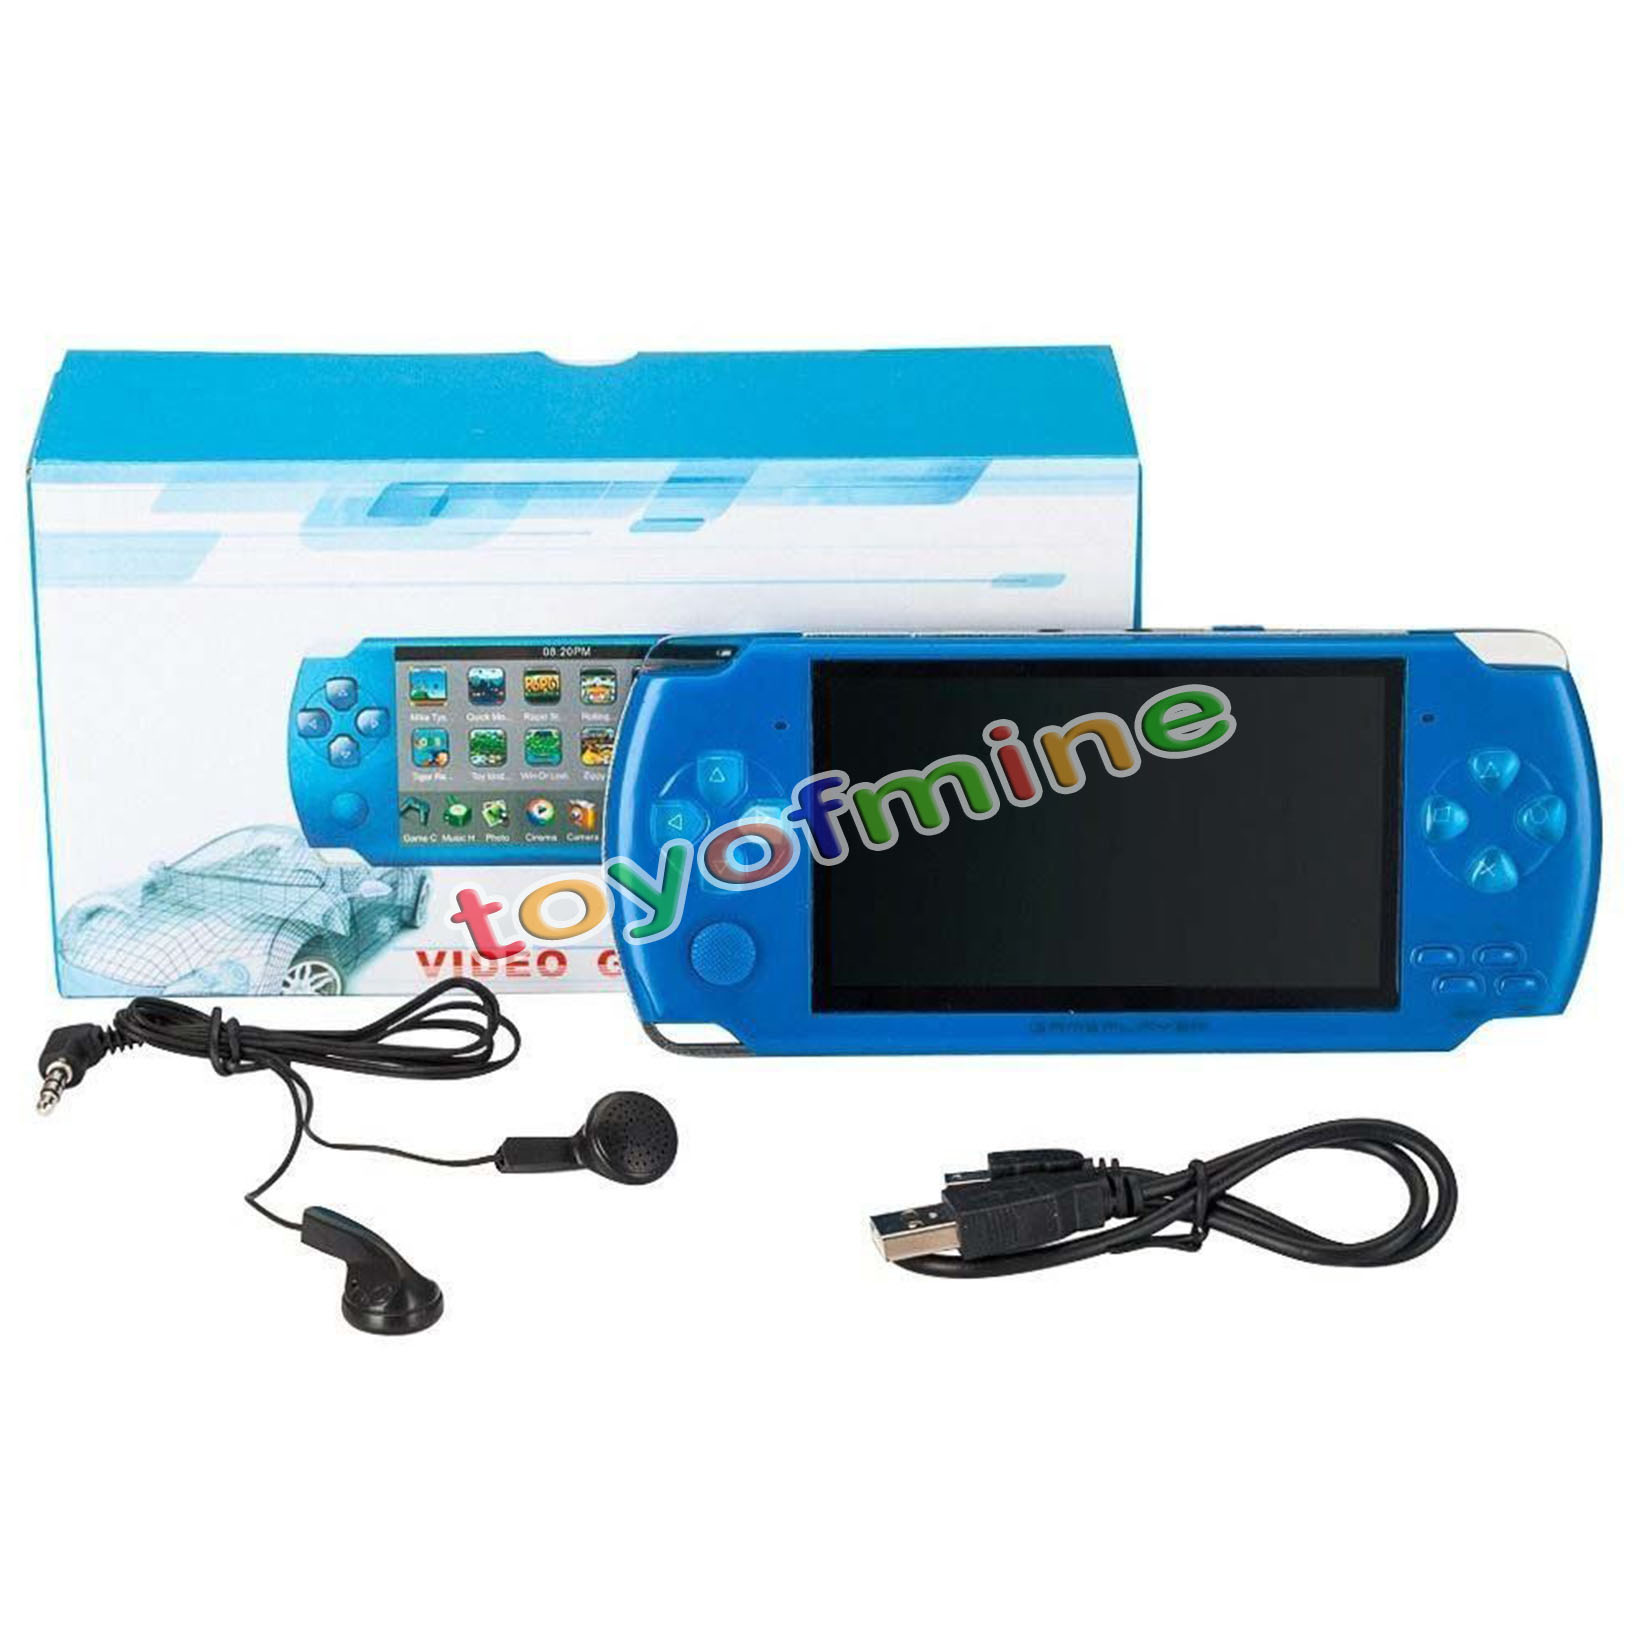 8gb 4 3 39 39 32bit 10000 Games Built In Portable Handheld